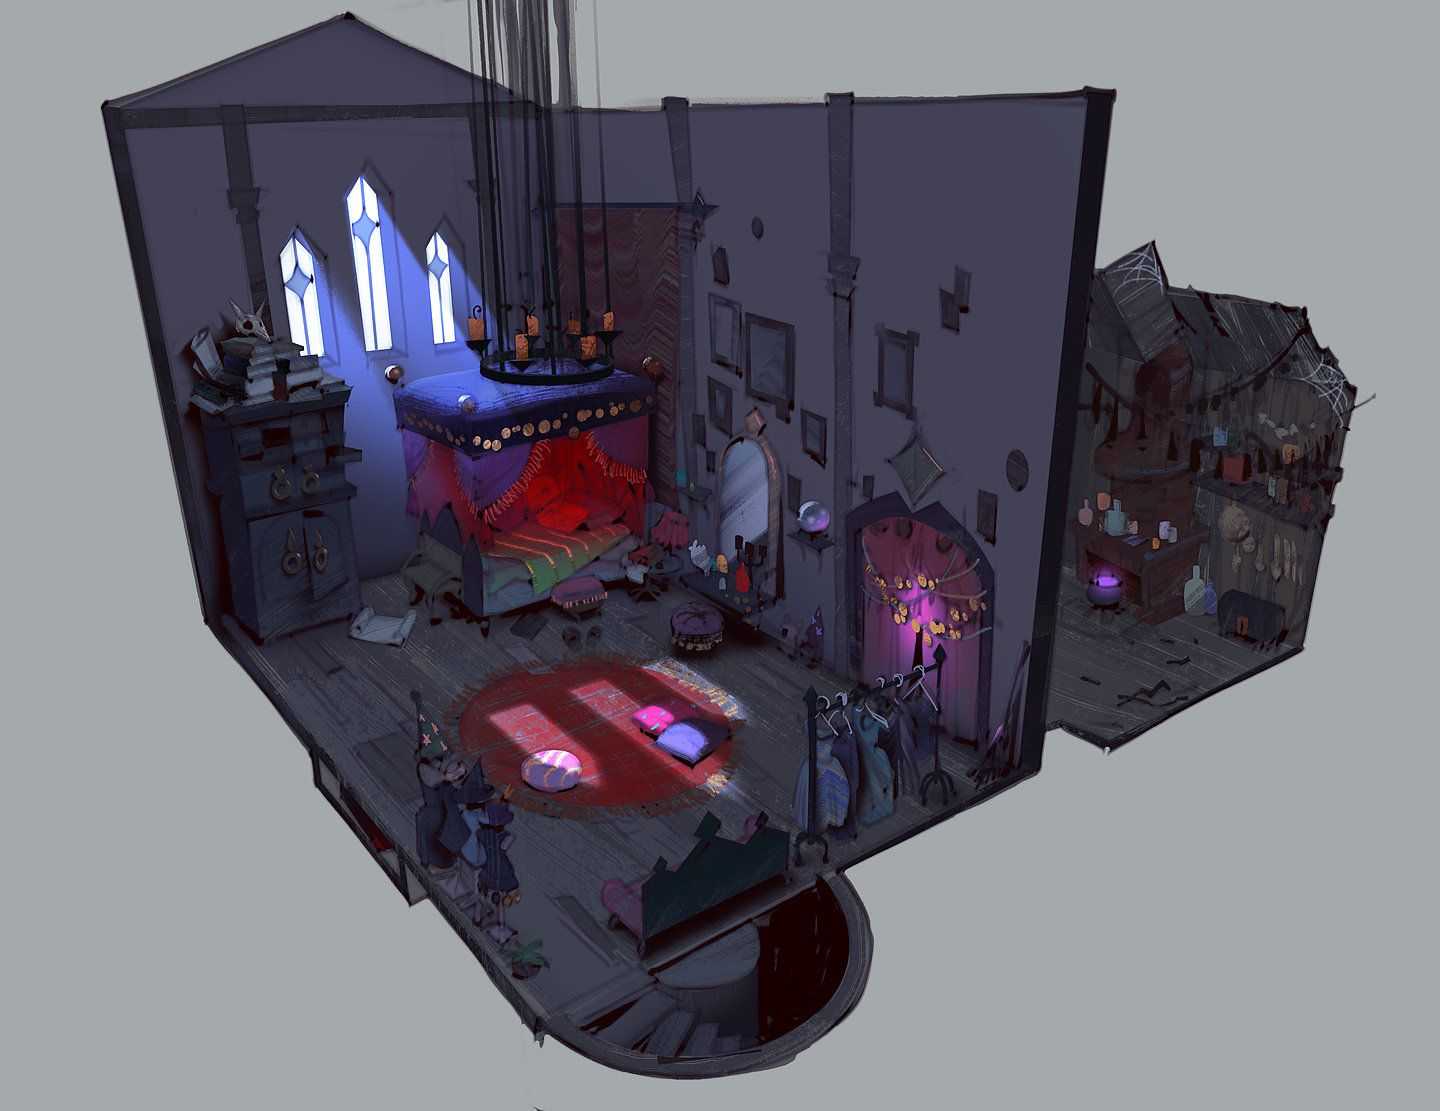 ArtStation - young witch room concept, Sergei Ryzhov